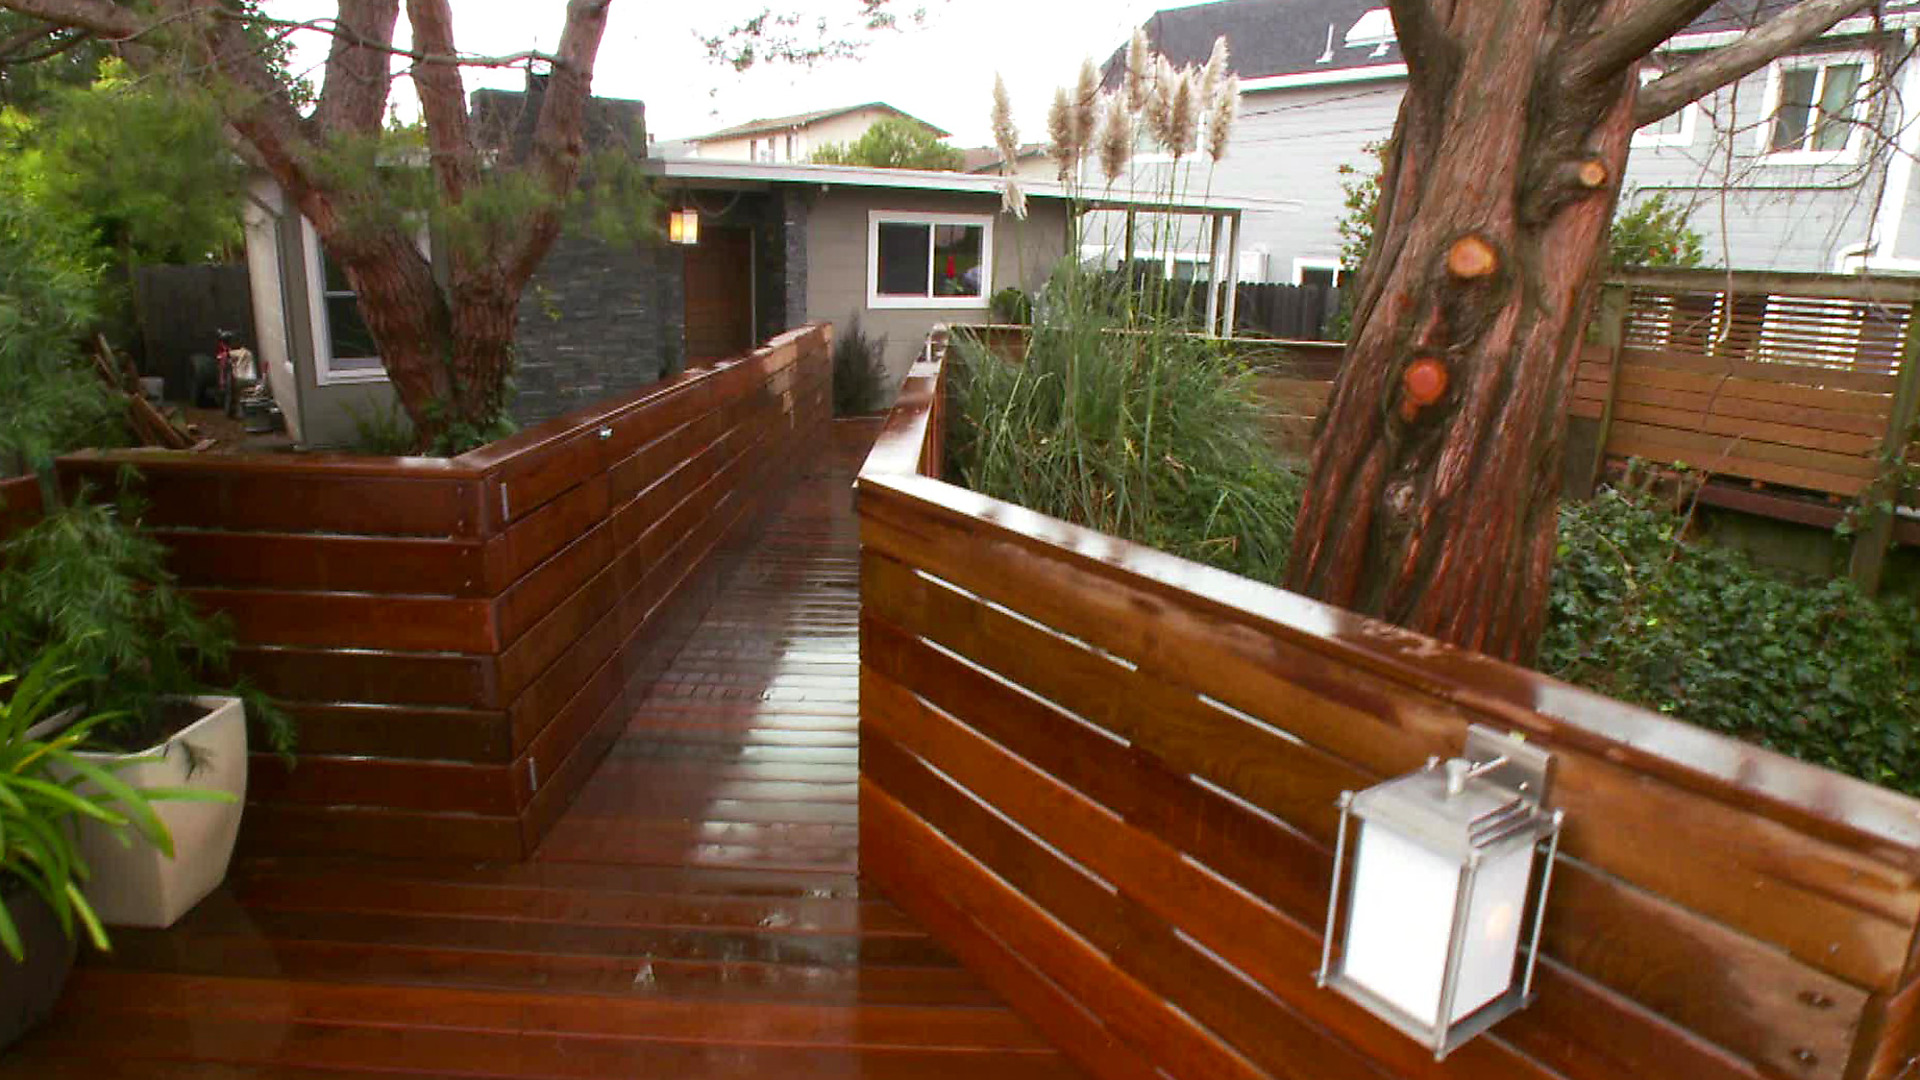 httpswwwhgtvcomcontentdamimageshgtvvideo - Courtyard Design Ideas